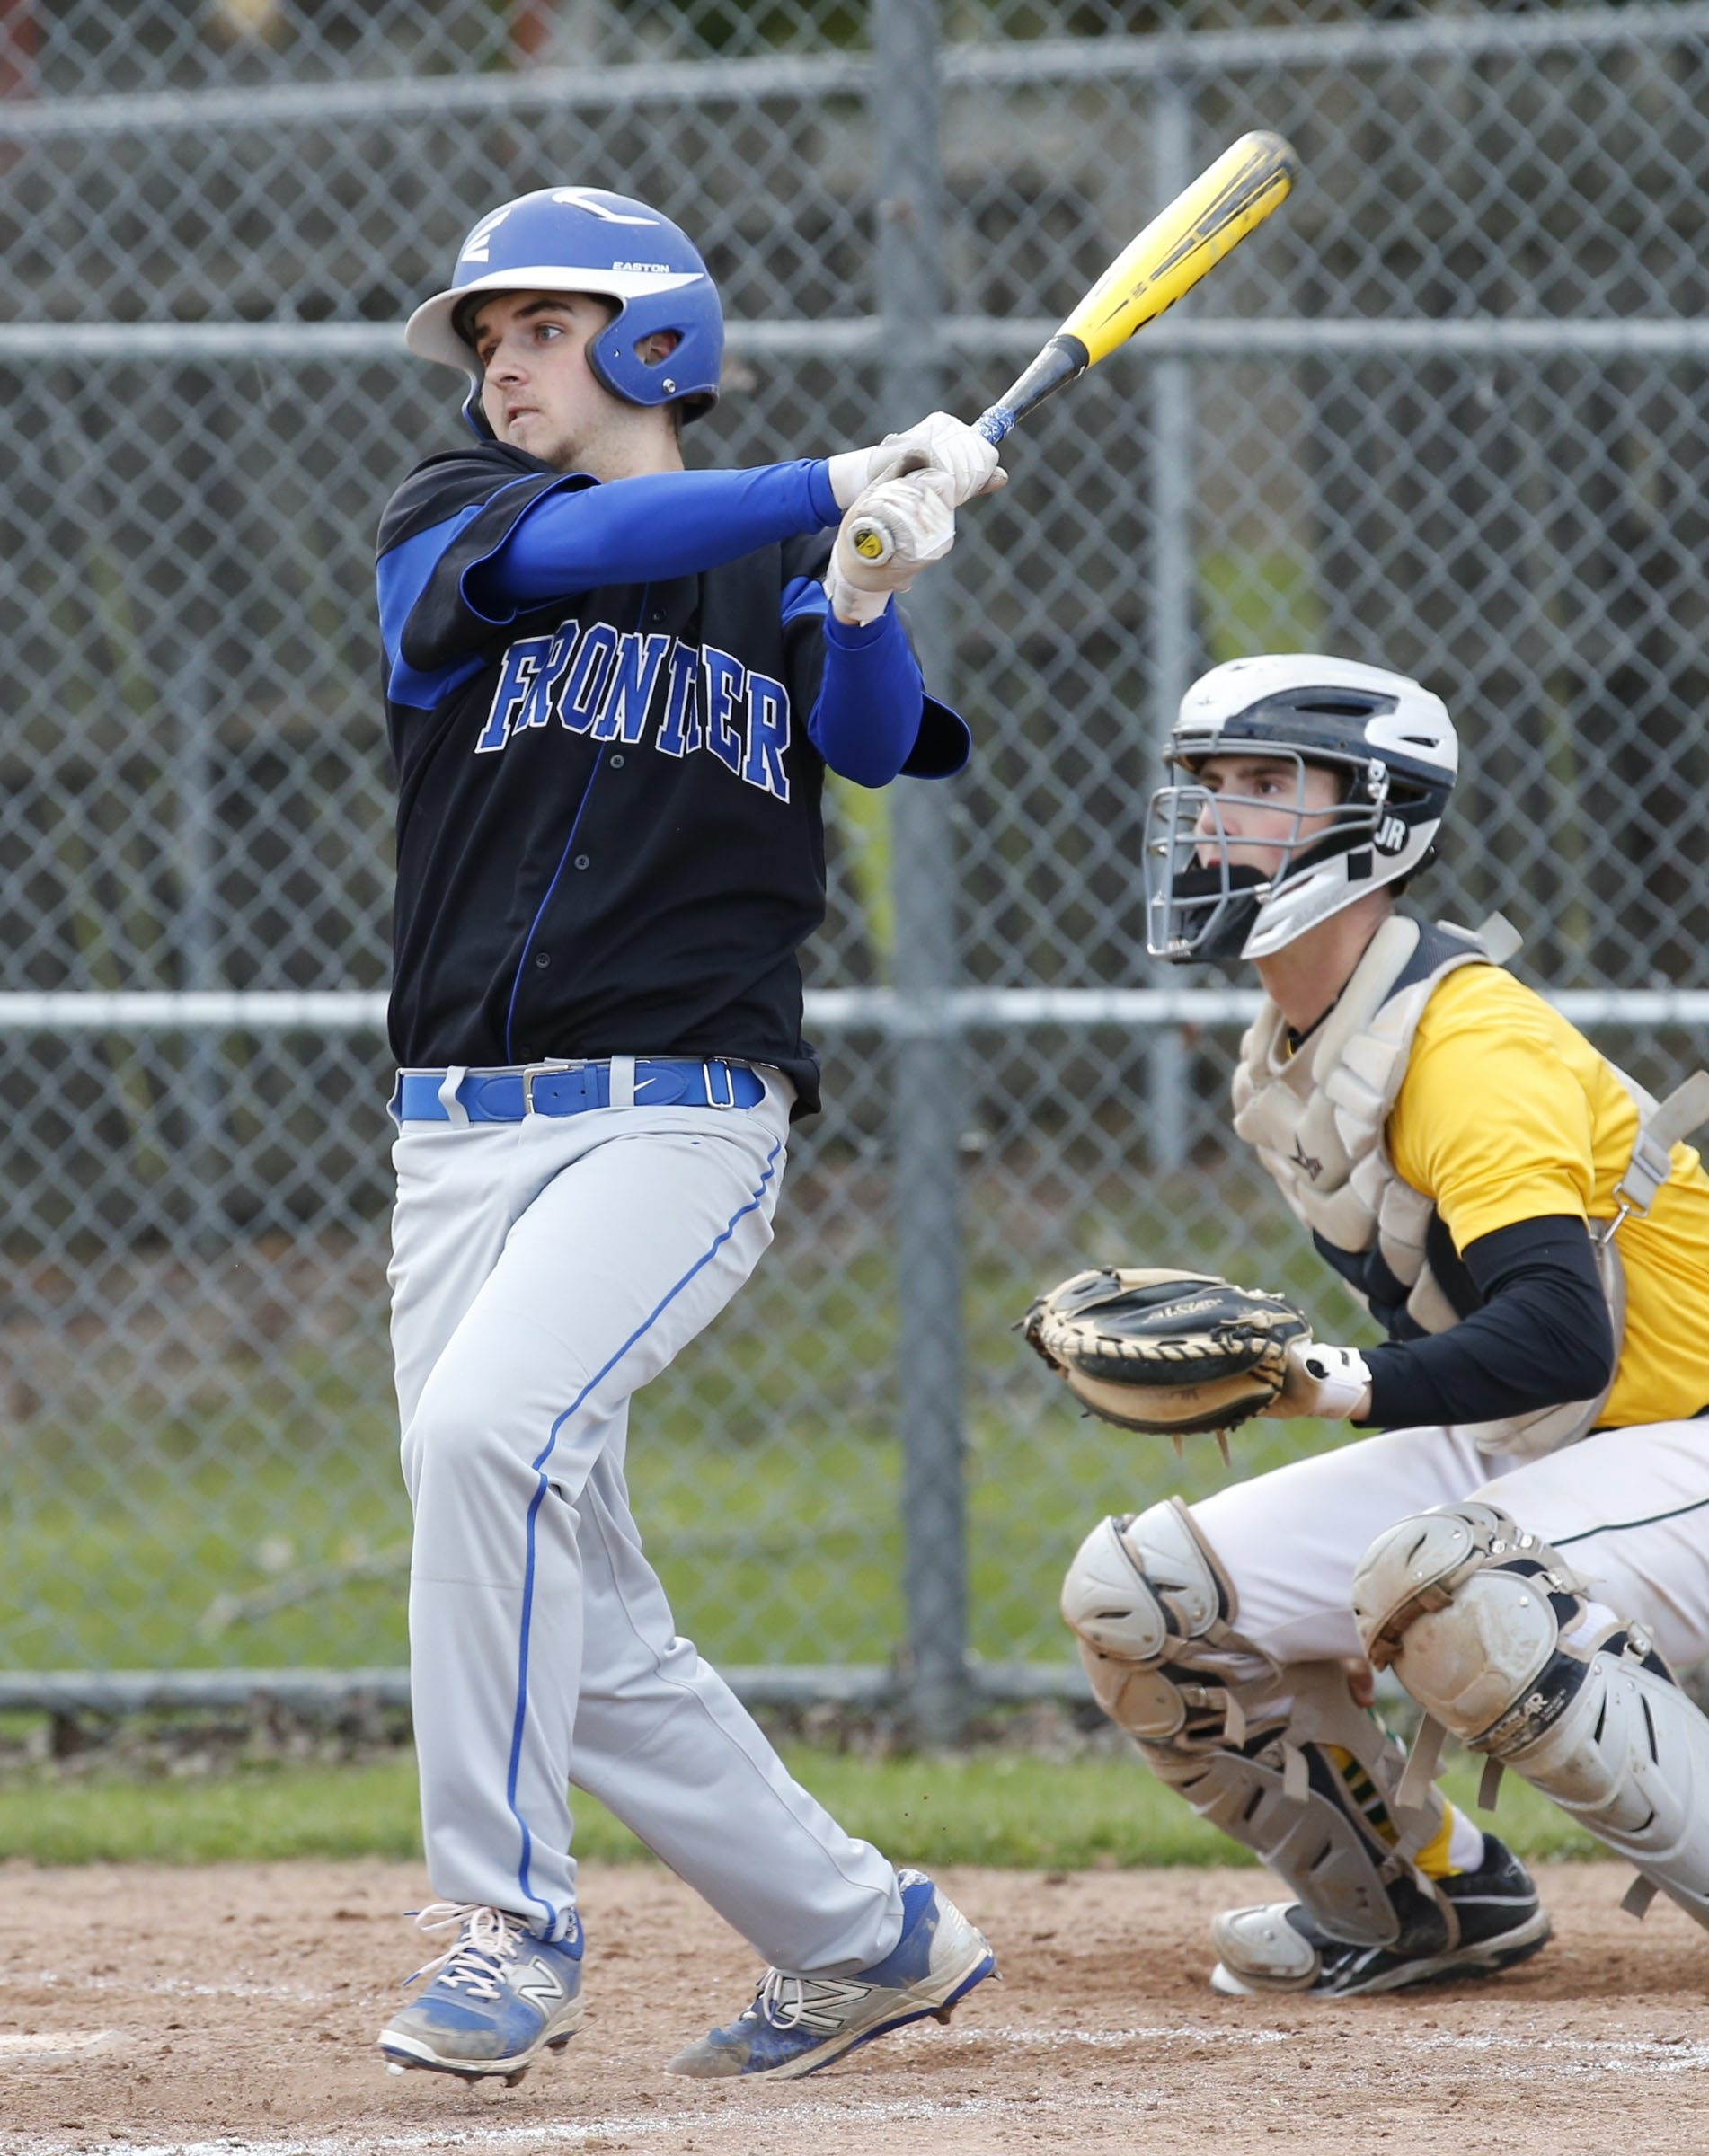 Frontier's Matt Kellner singles during Friday's game against WIlliamsville North. The Falcons took a 5-3 decision.